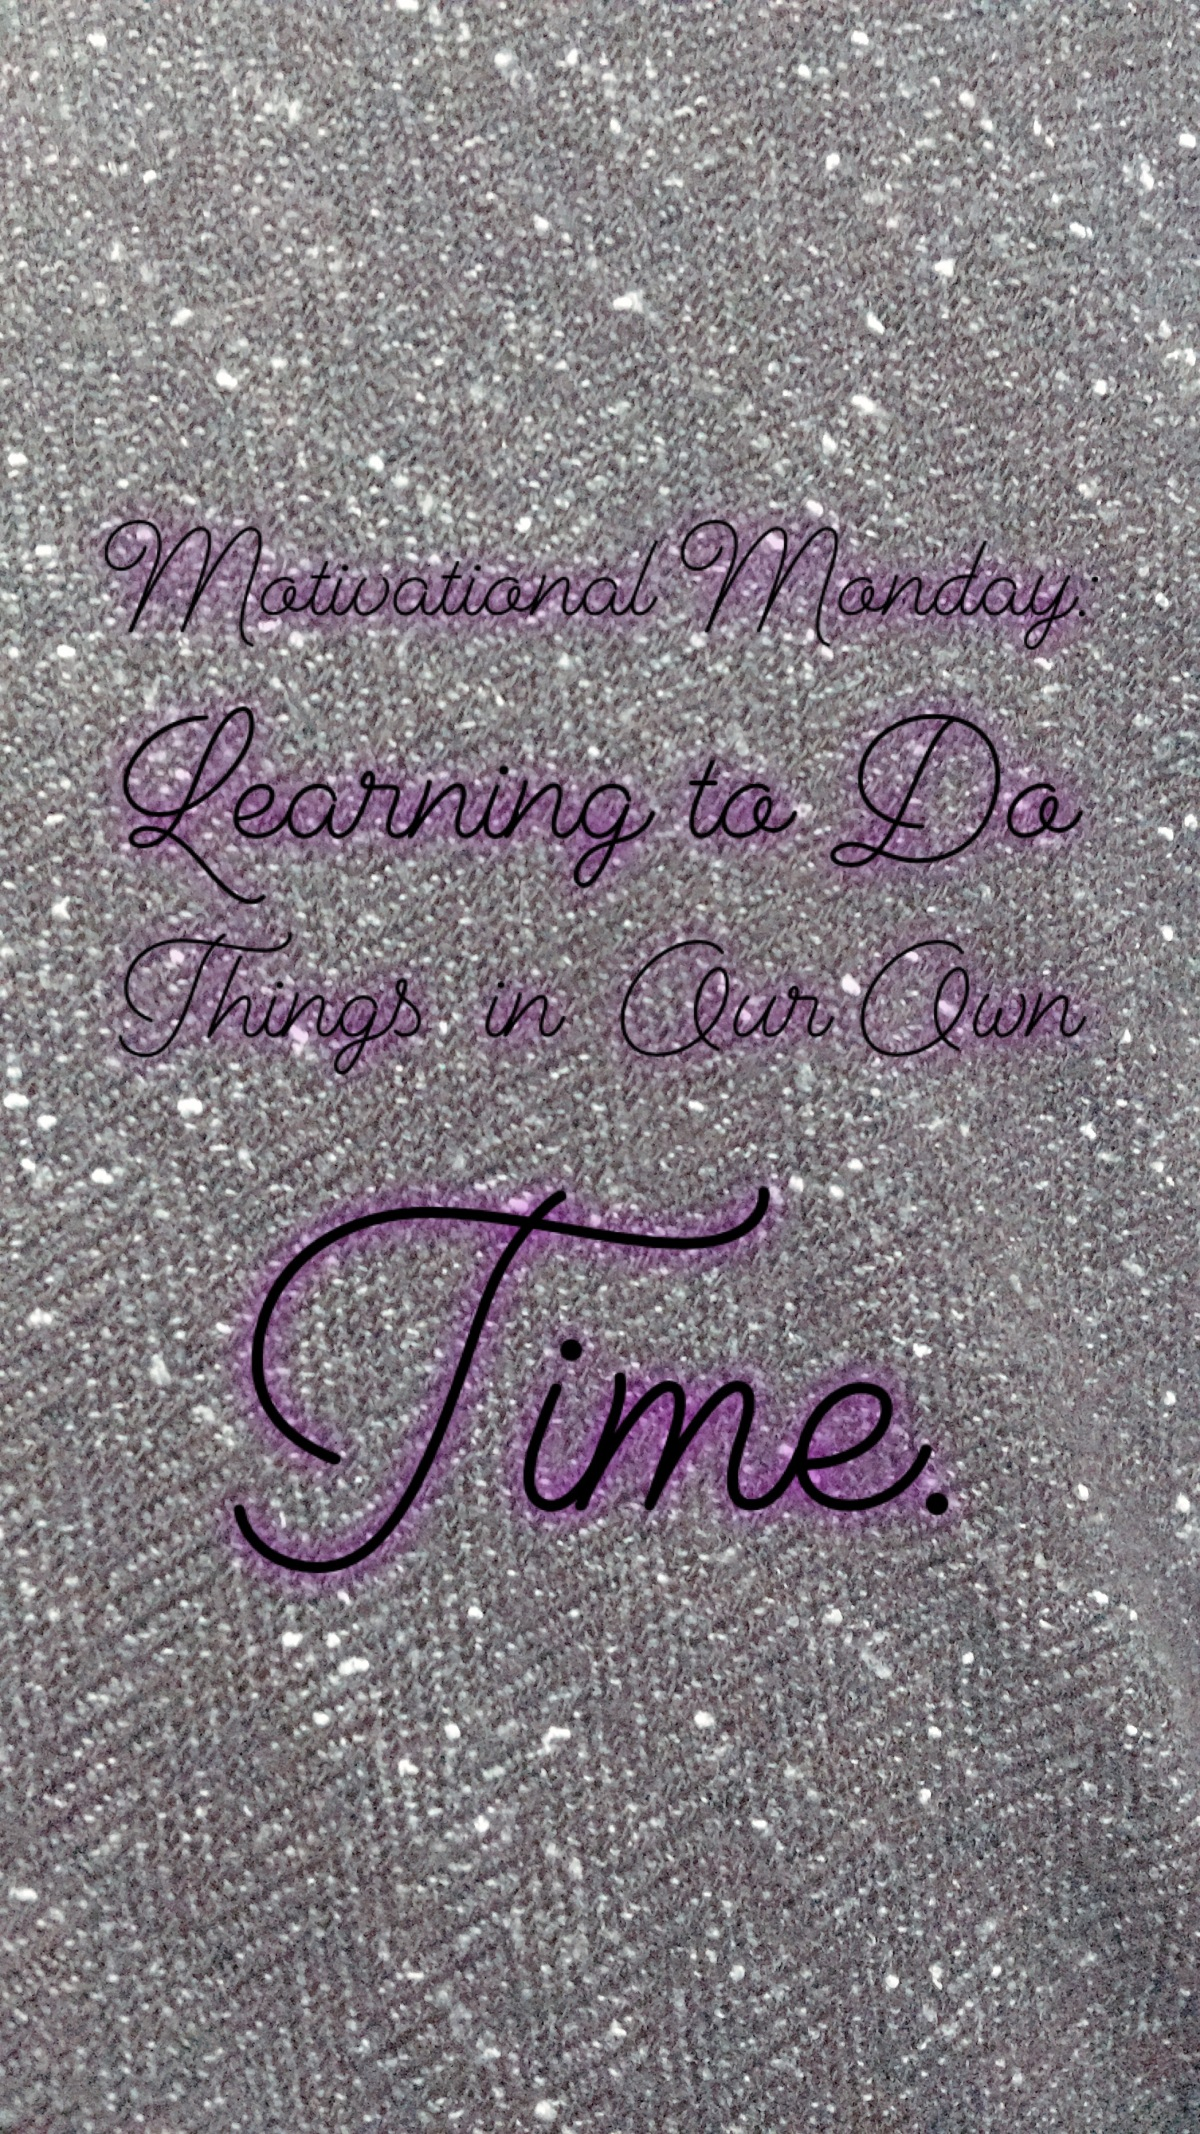 Motivational Monday: Learning to Do Things In Our Own Time